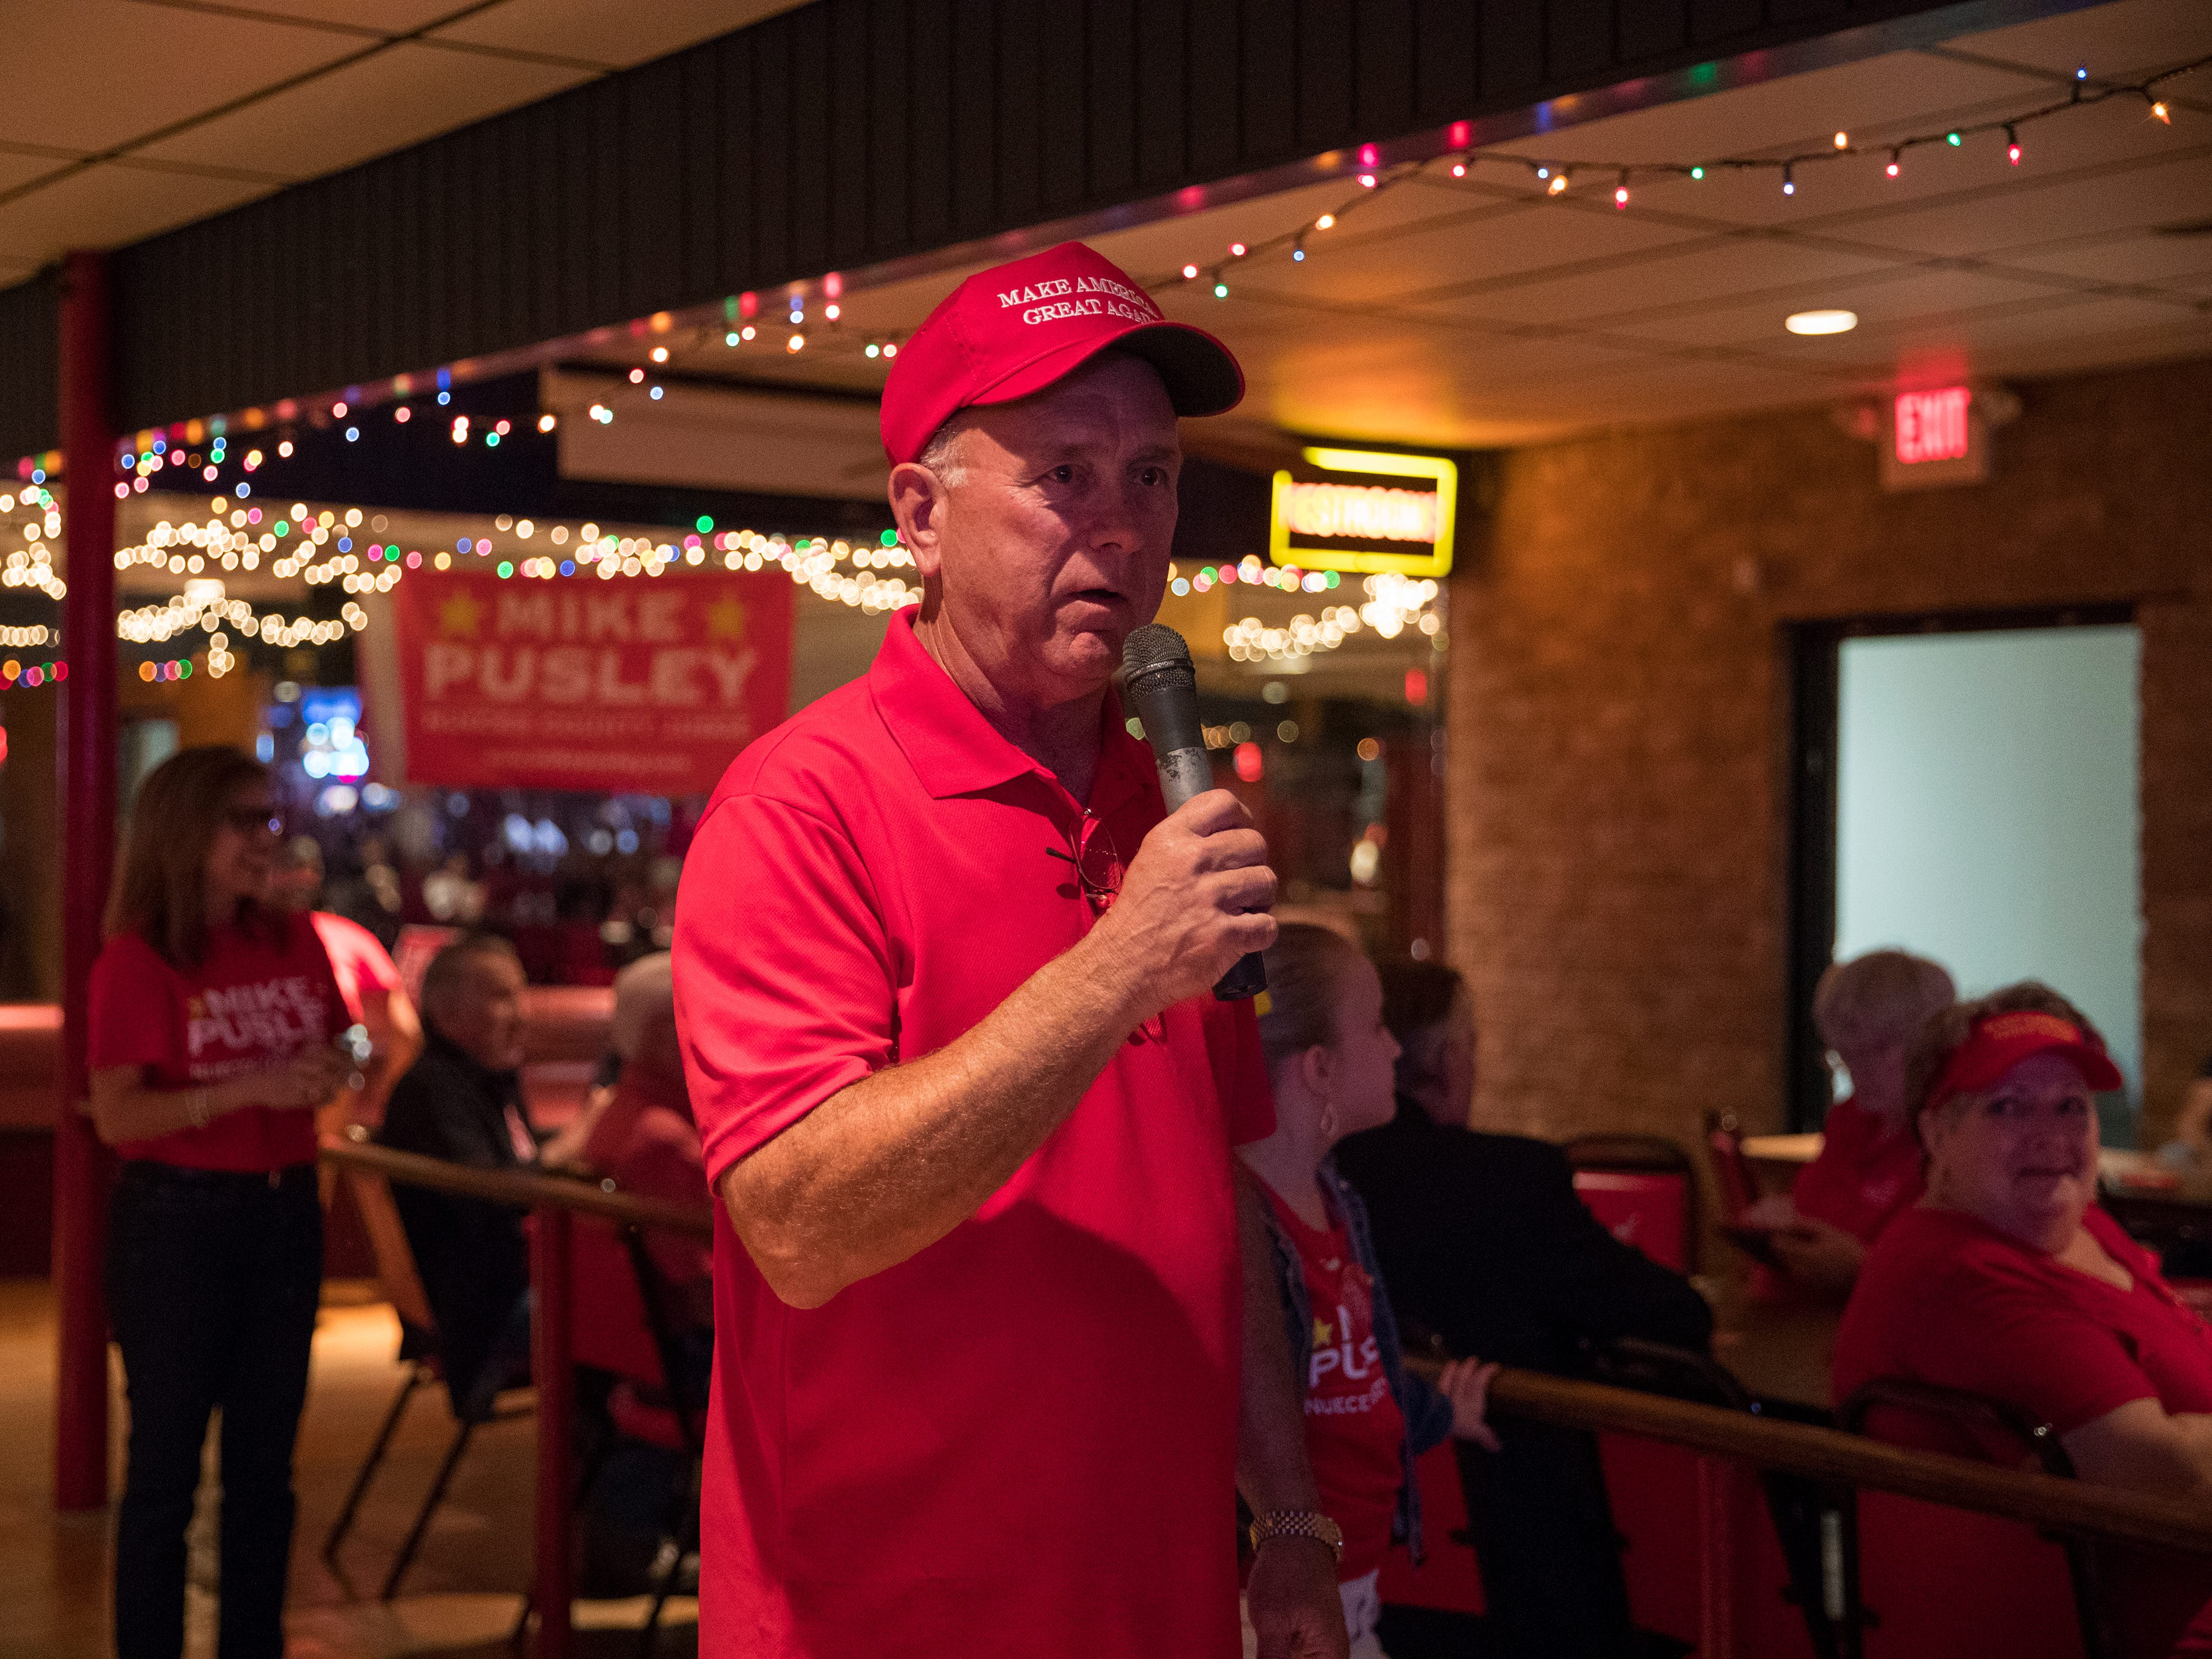 Republican candidate for Nueces County Judge Mike Pusley talks with supporters during his watch party at the Bar-B-Q Man on Tuesday, November 6, 2018.